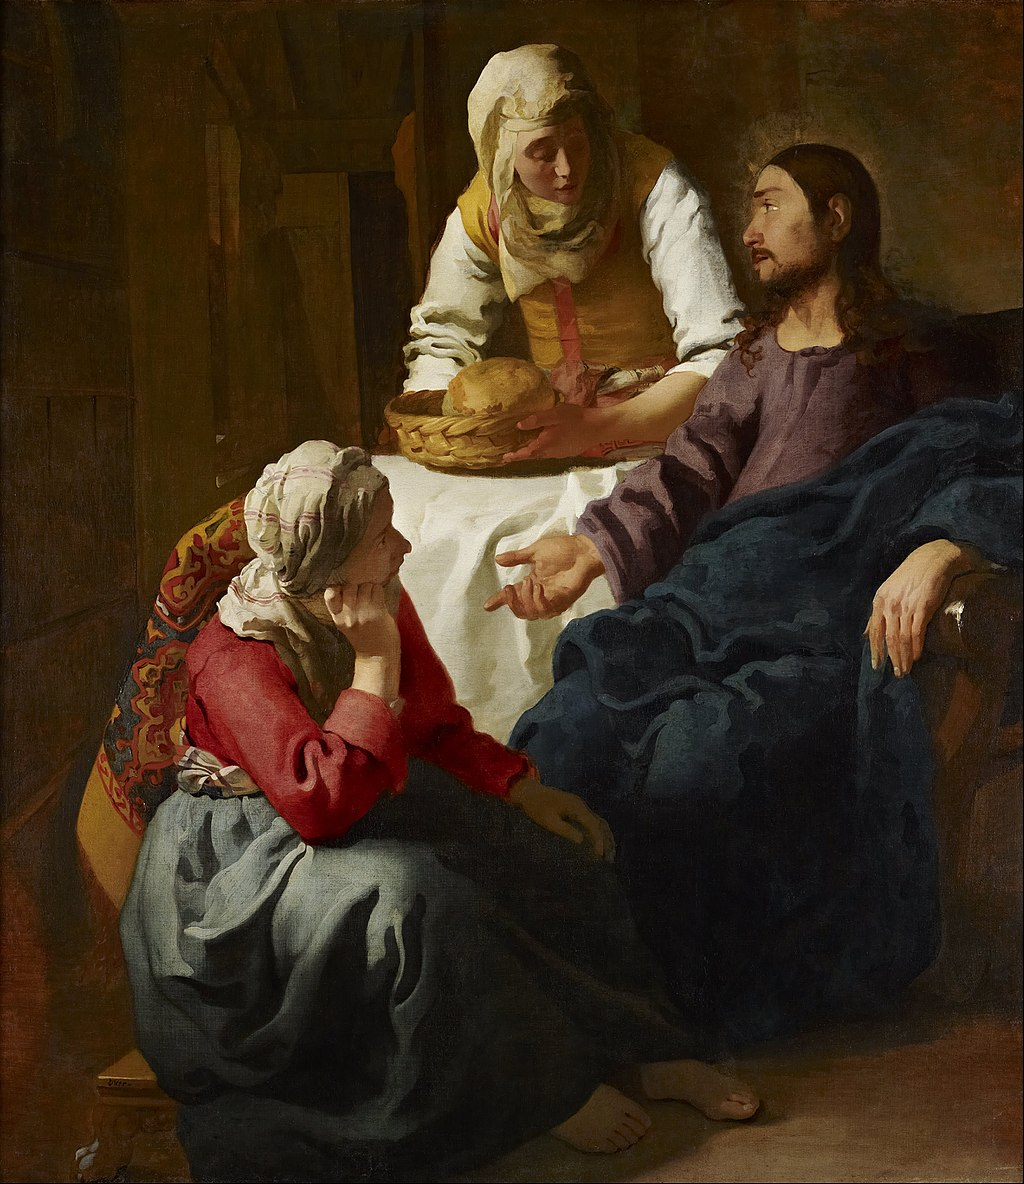 1024px-Johannes_(Jan)_Vermeer_-_Christ_in_the_House_of_Martha_and_Mary_-_Google_Art_Project.jpg